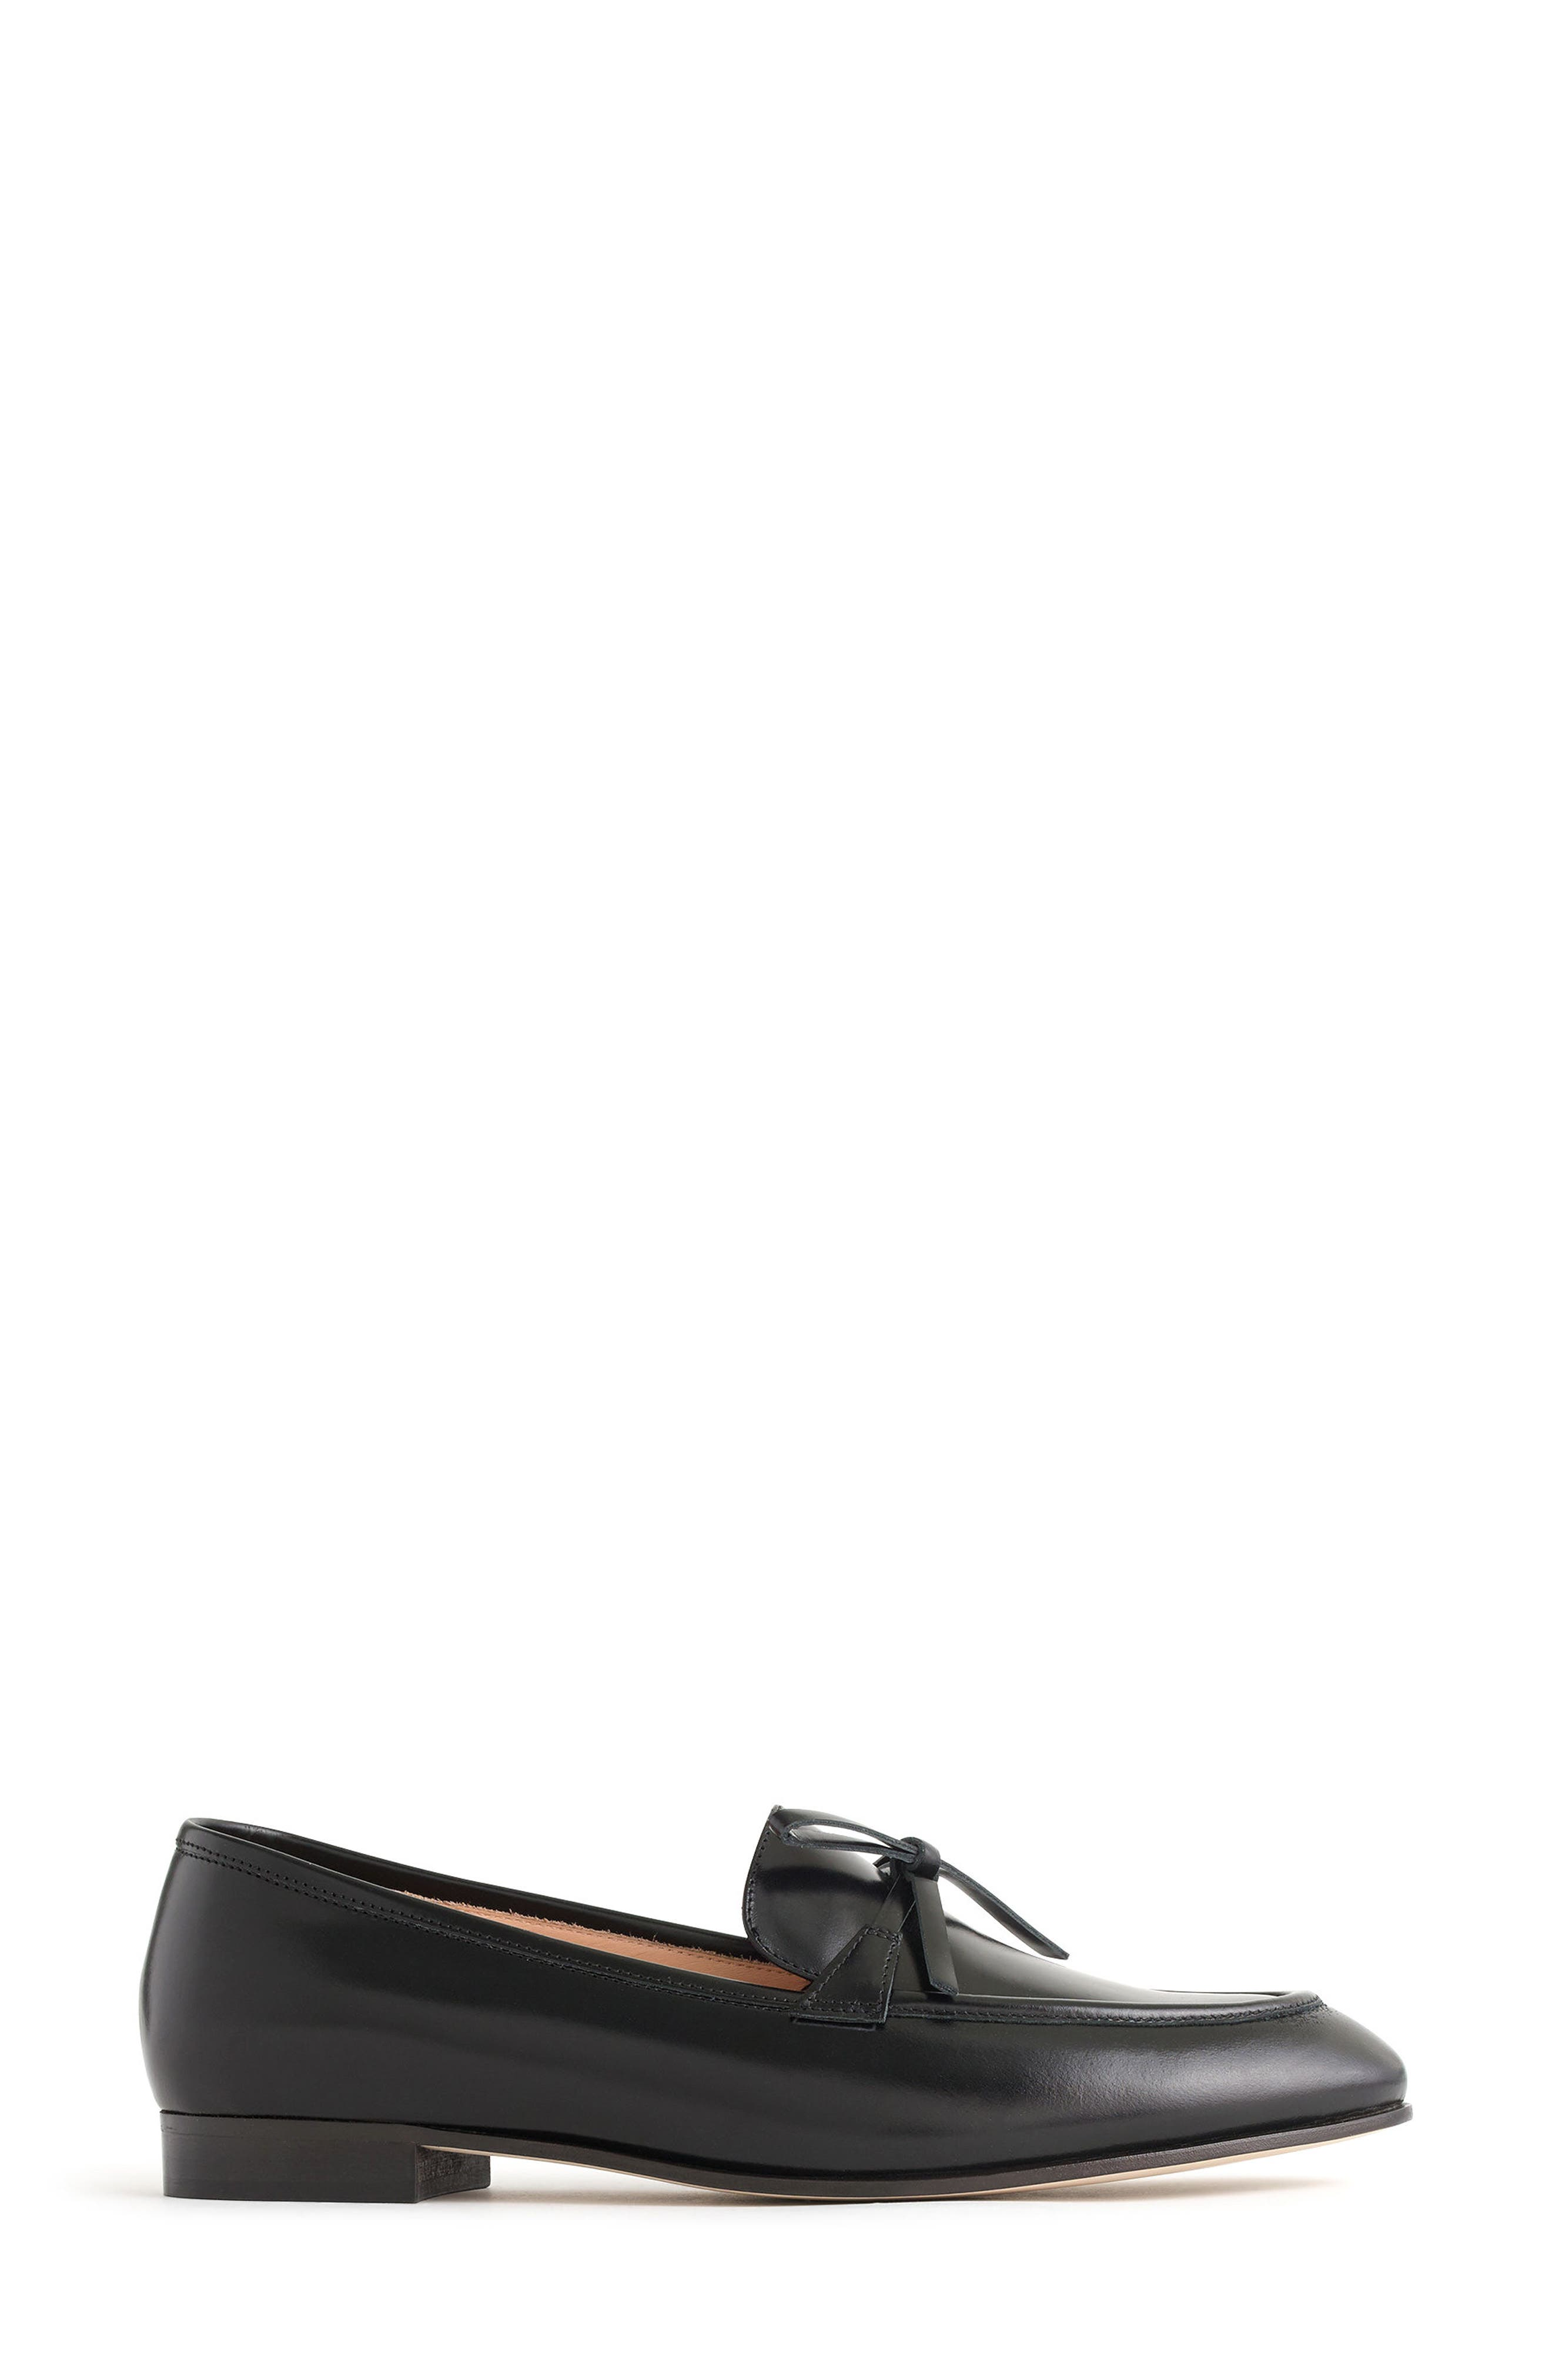 Bow Loafer,                             Alternate thumbnail 3, color,                             Black Leather